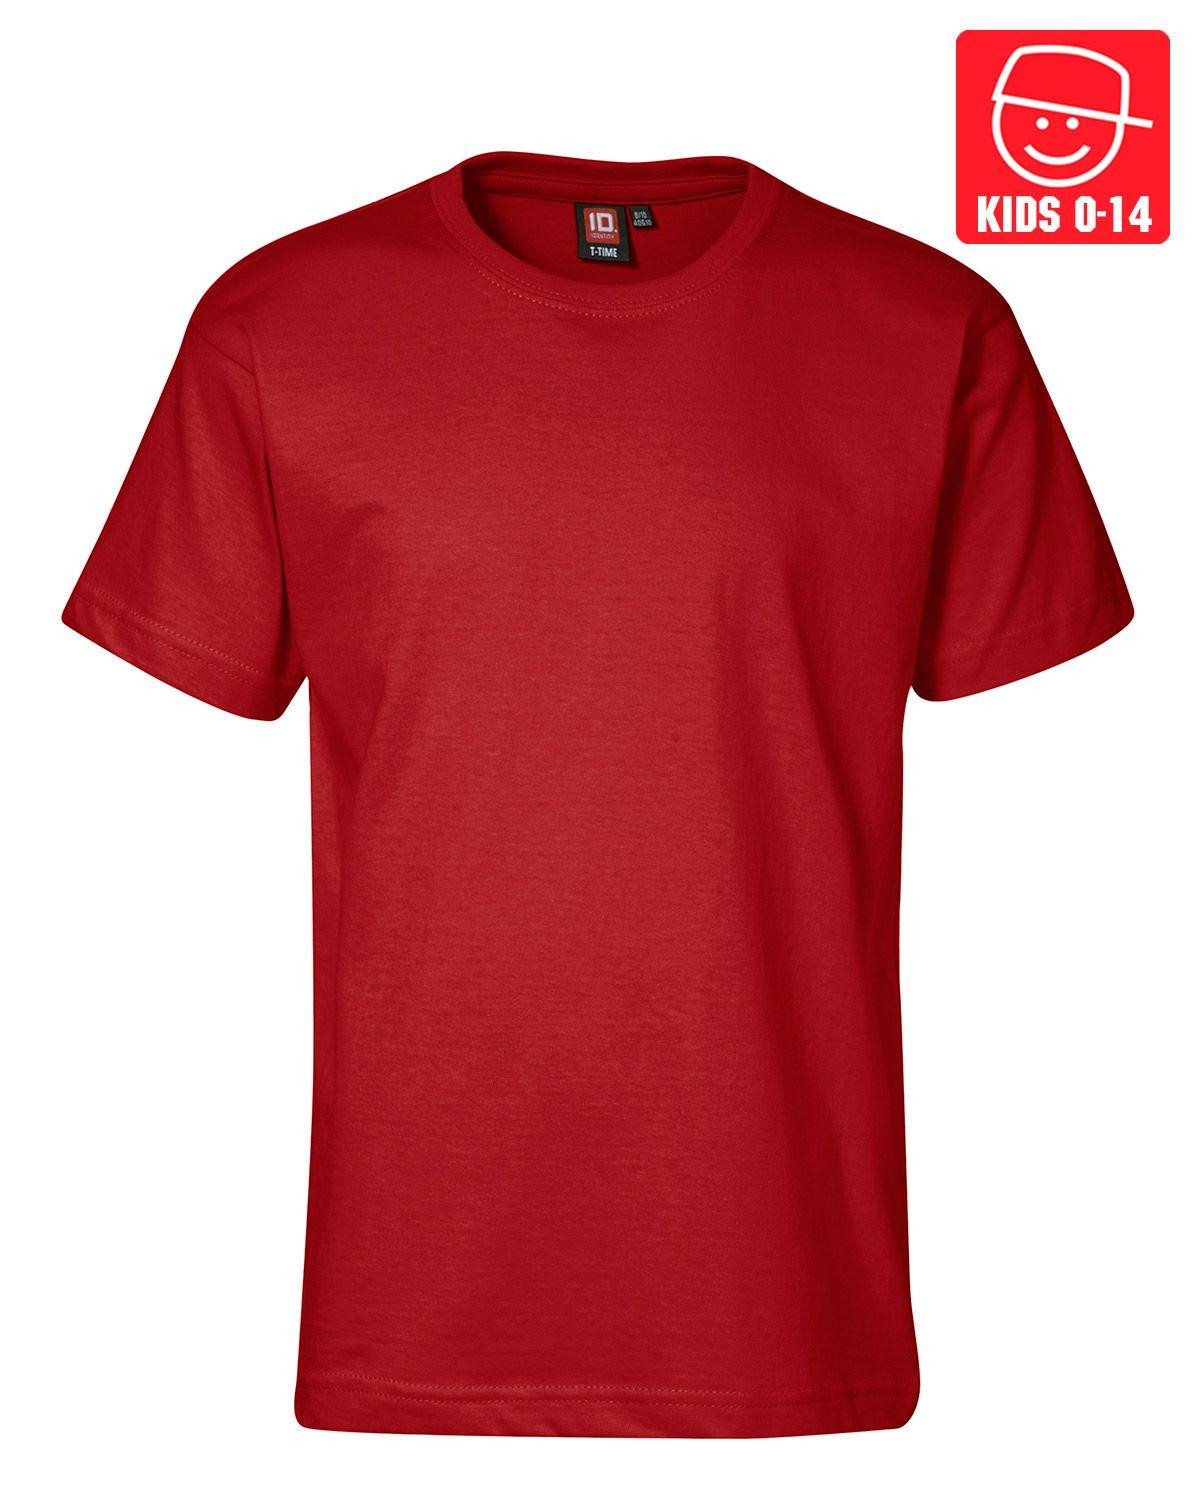 Image of   ID T-TIME T-shirt (Rød, 152)